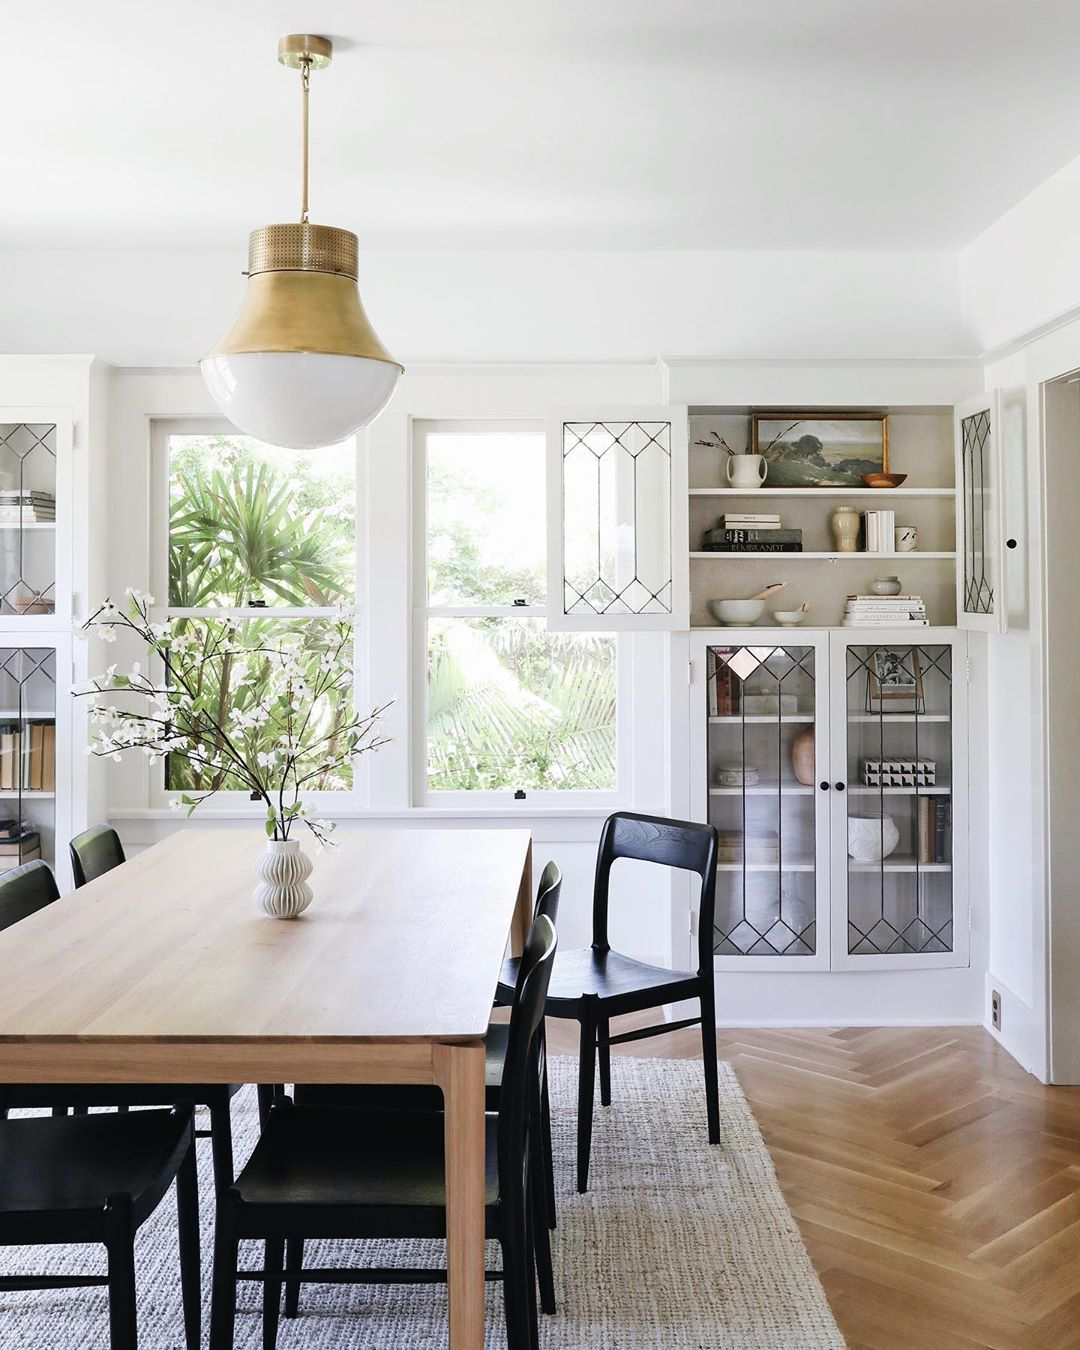 Casual Dining Rooms Decorating Ideas For A Soothing Interior: Ever So Slowwwly Making This House Feel More Like Home